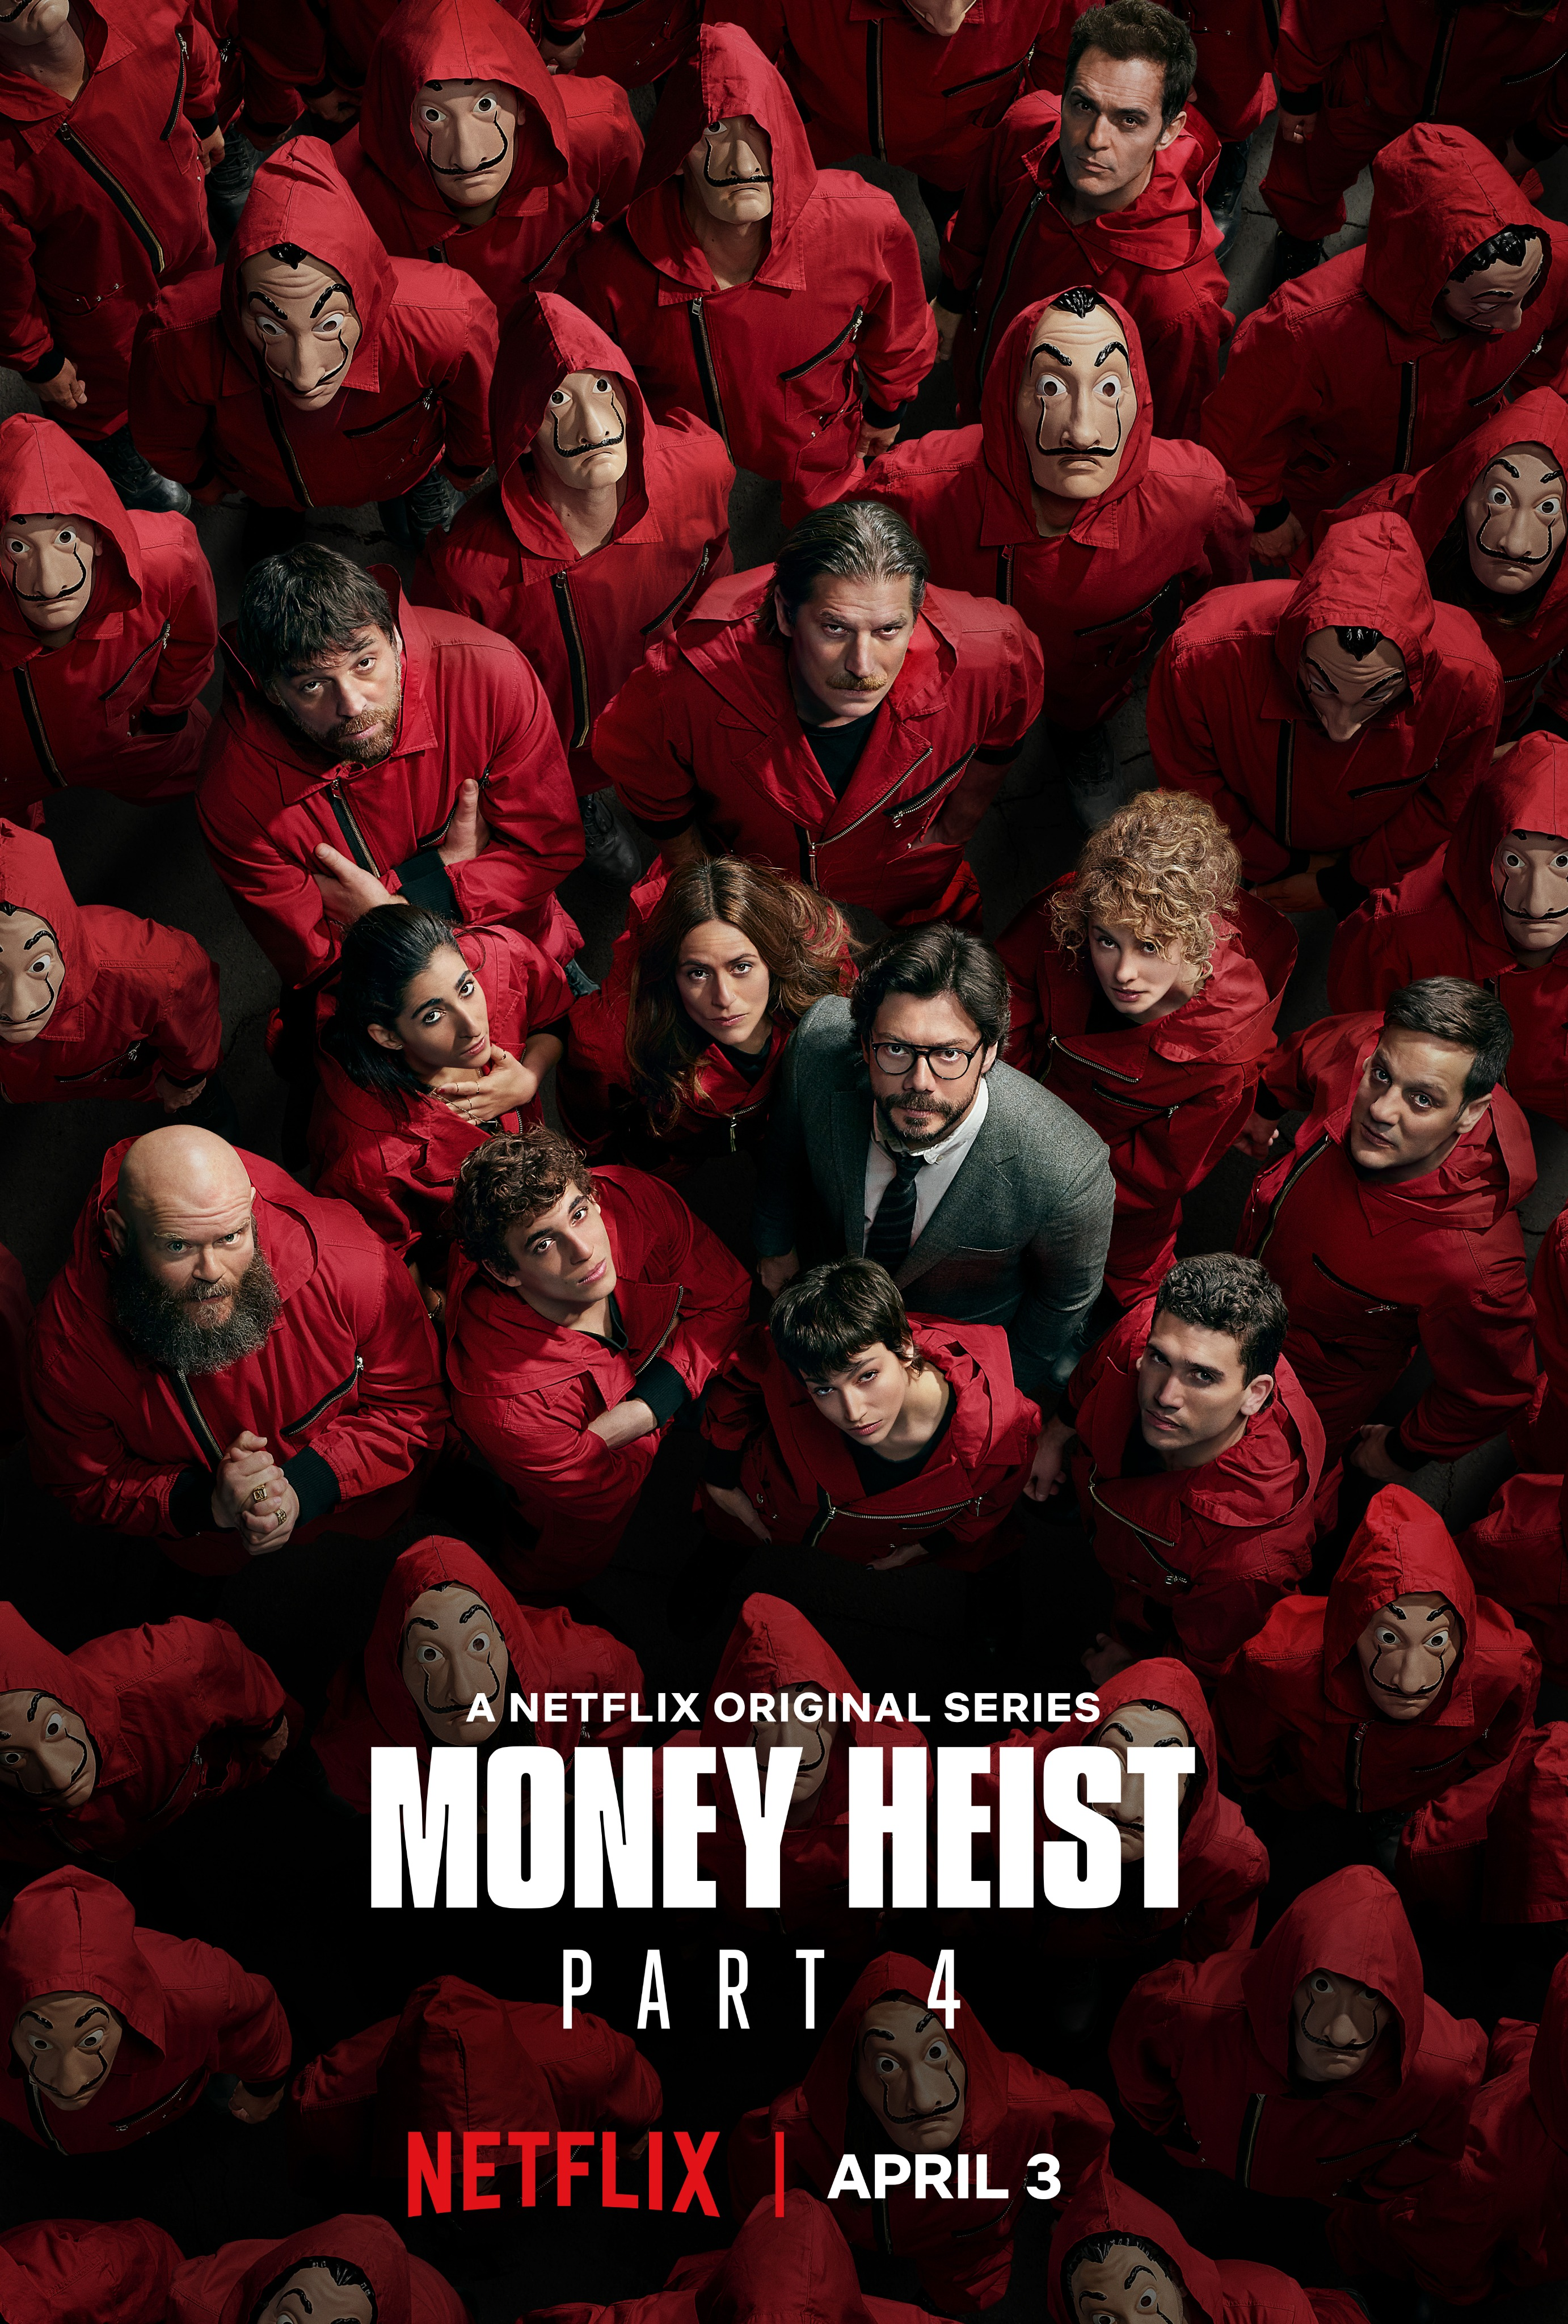 Money Heist S04 2020 Hindi Dubbed NF Complete Series 1.3GB HDRip Download